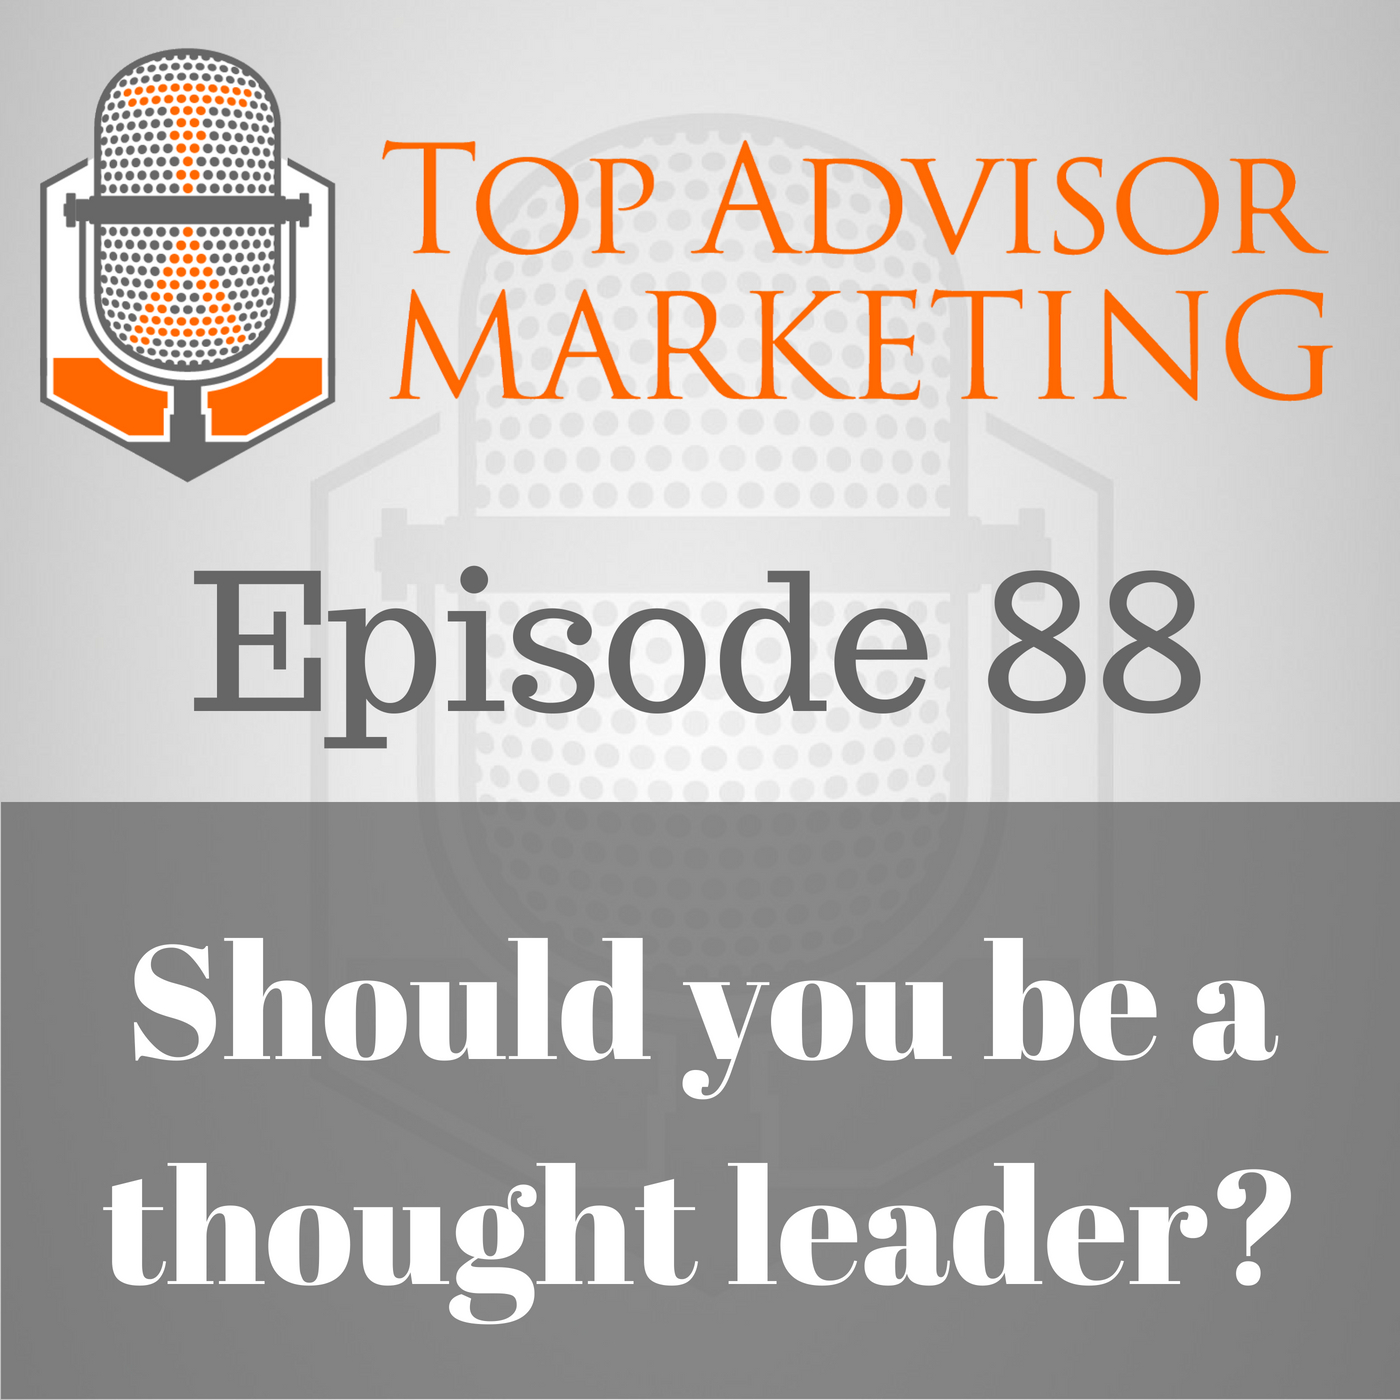 Episode 88 - Should You Be a Thought Leader?